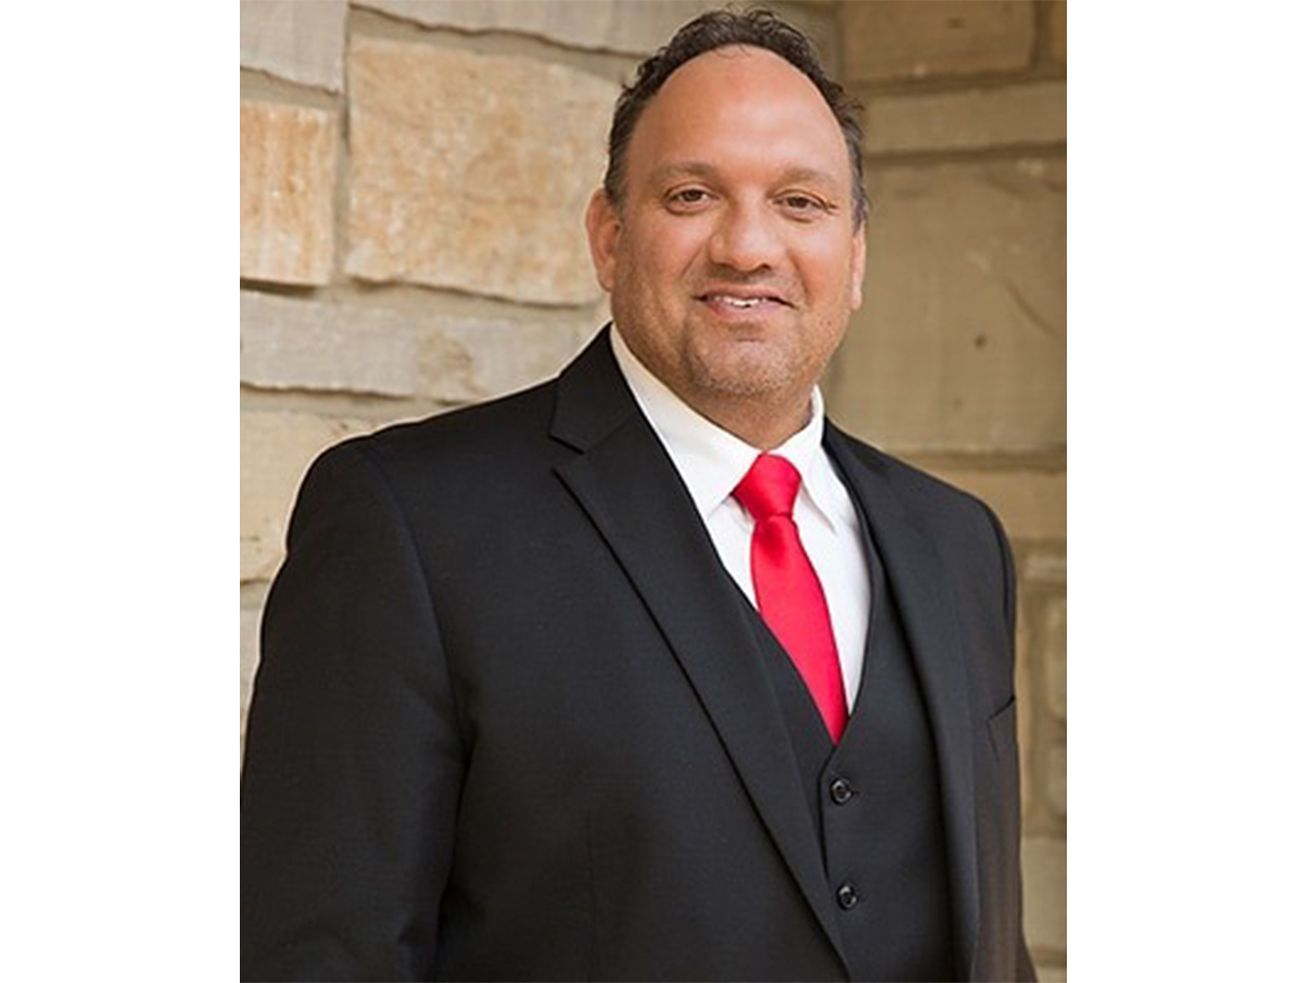 Anthony Beckman, Illinois Senate 10th District Republican nominee, 2020 election candidate questionnaire